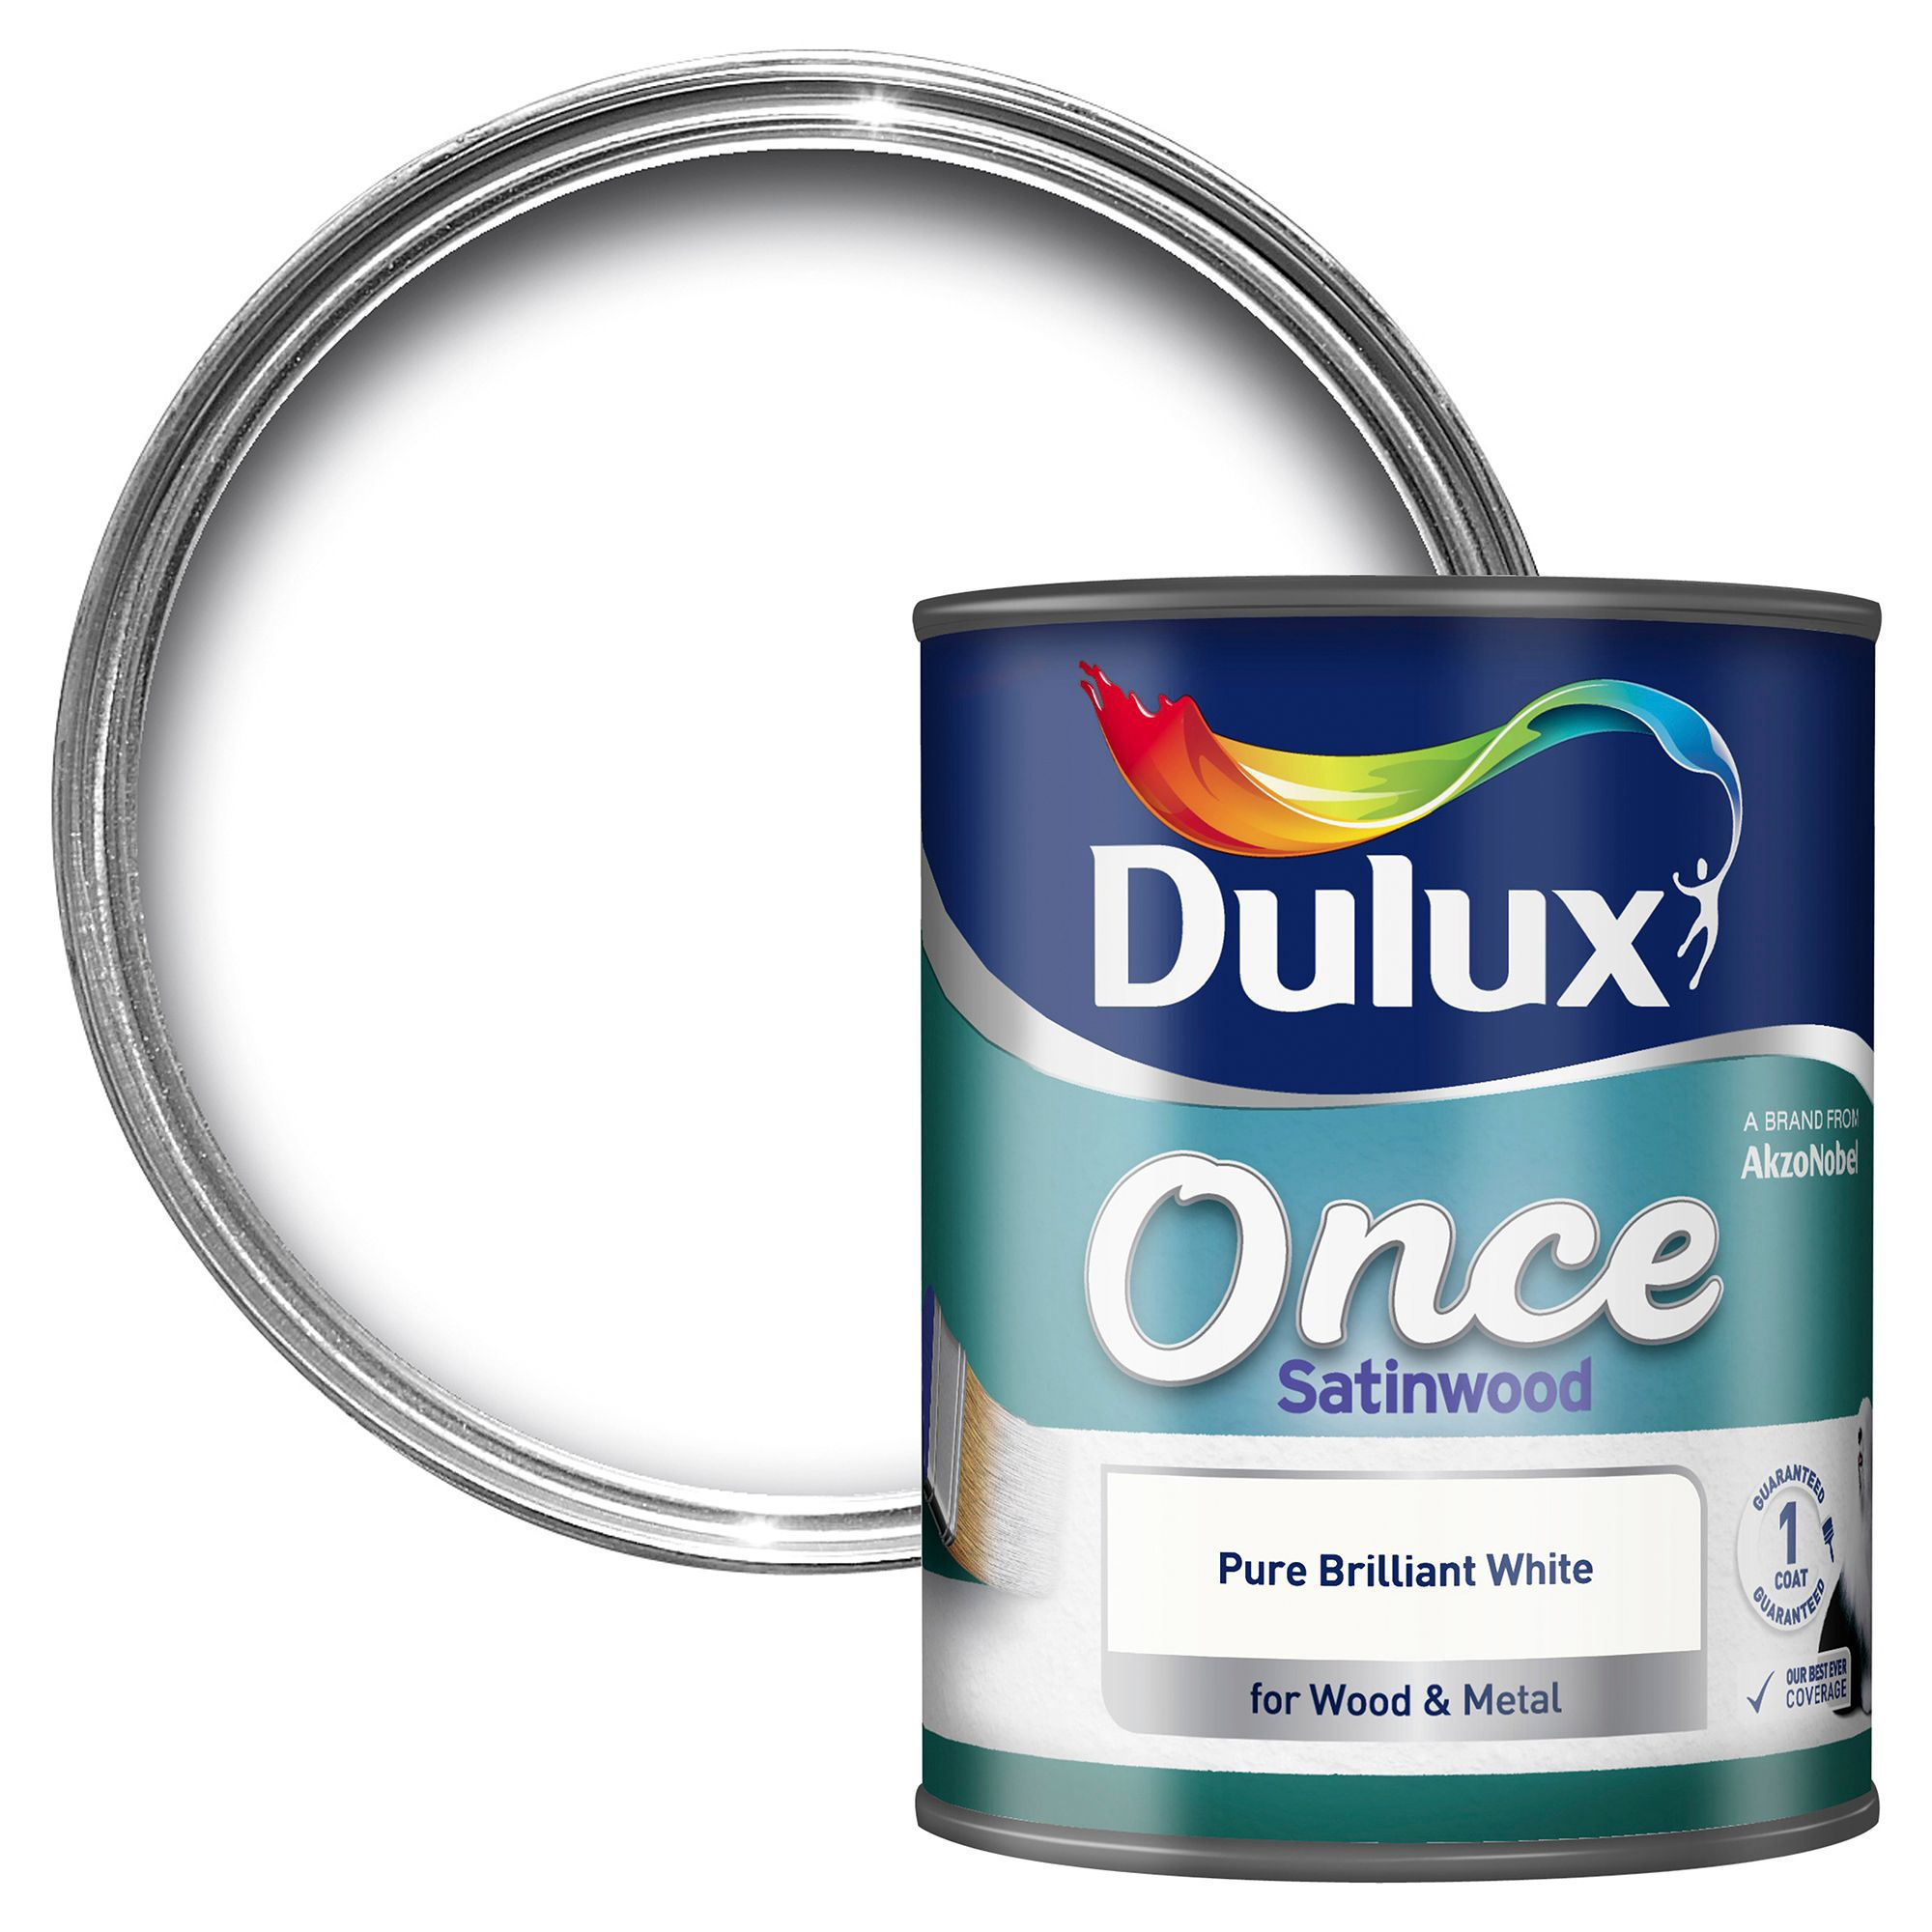 Dulux Interior Pure Brilliant White Satinwood Wood & Metal Paint 750ml